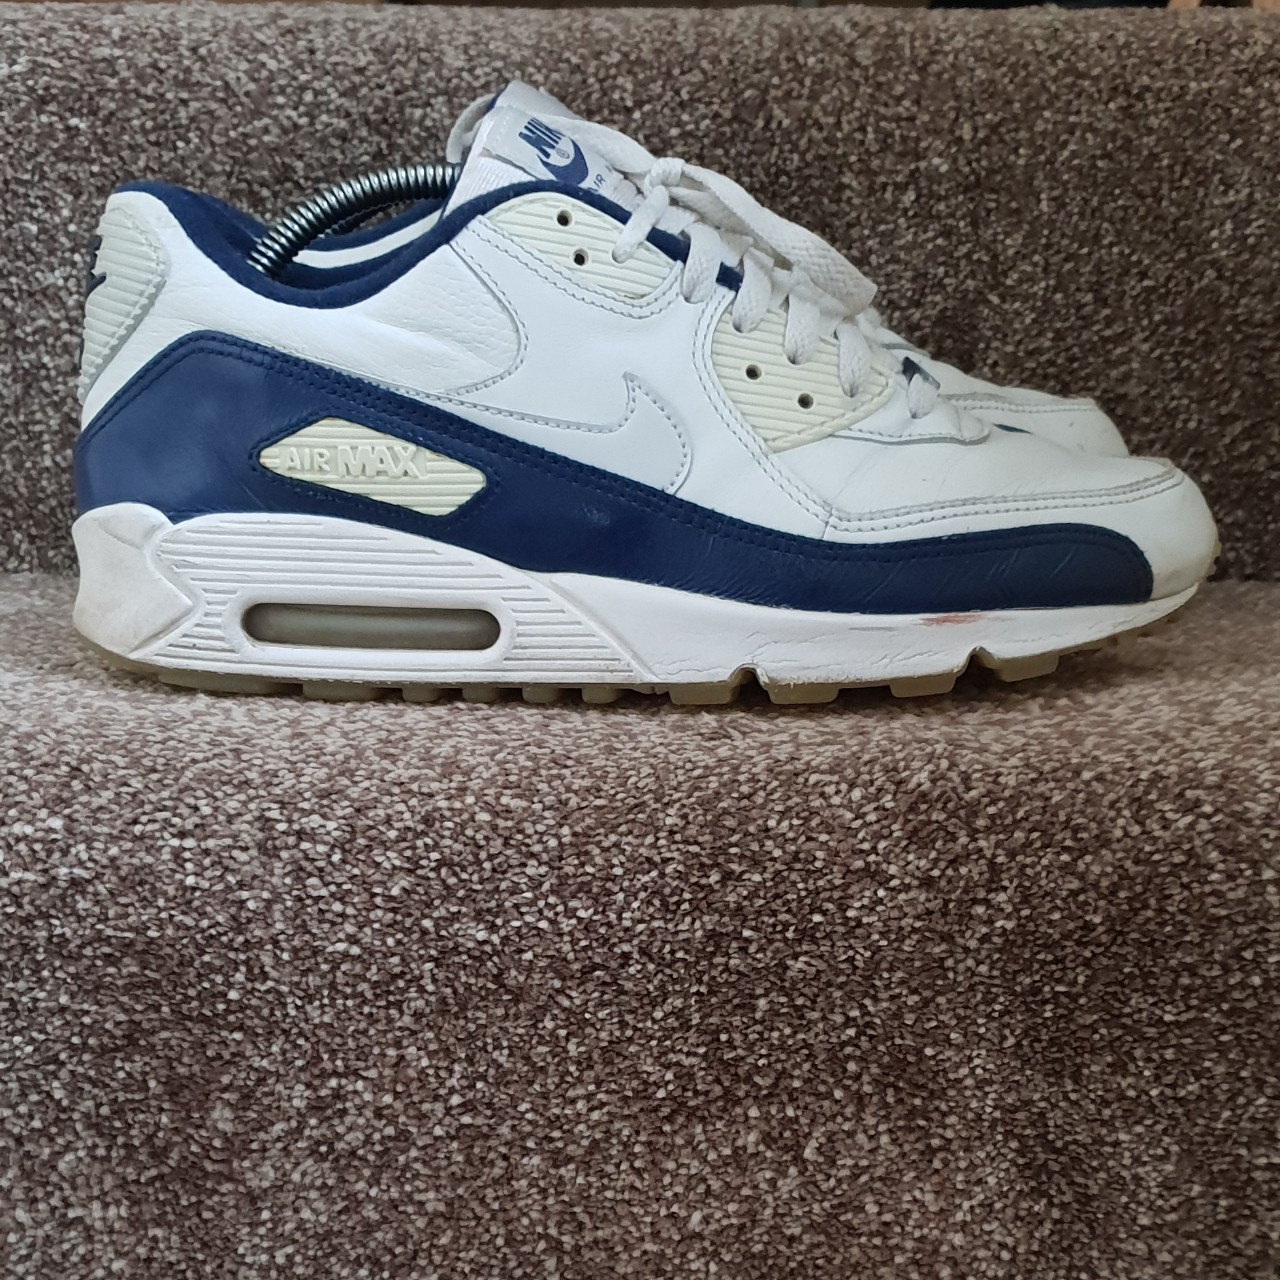 NEW   NIKE AIR MAX 90   MONOCHROMATIC NAVY LEATHER NWT